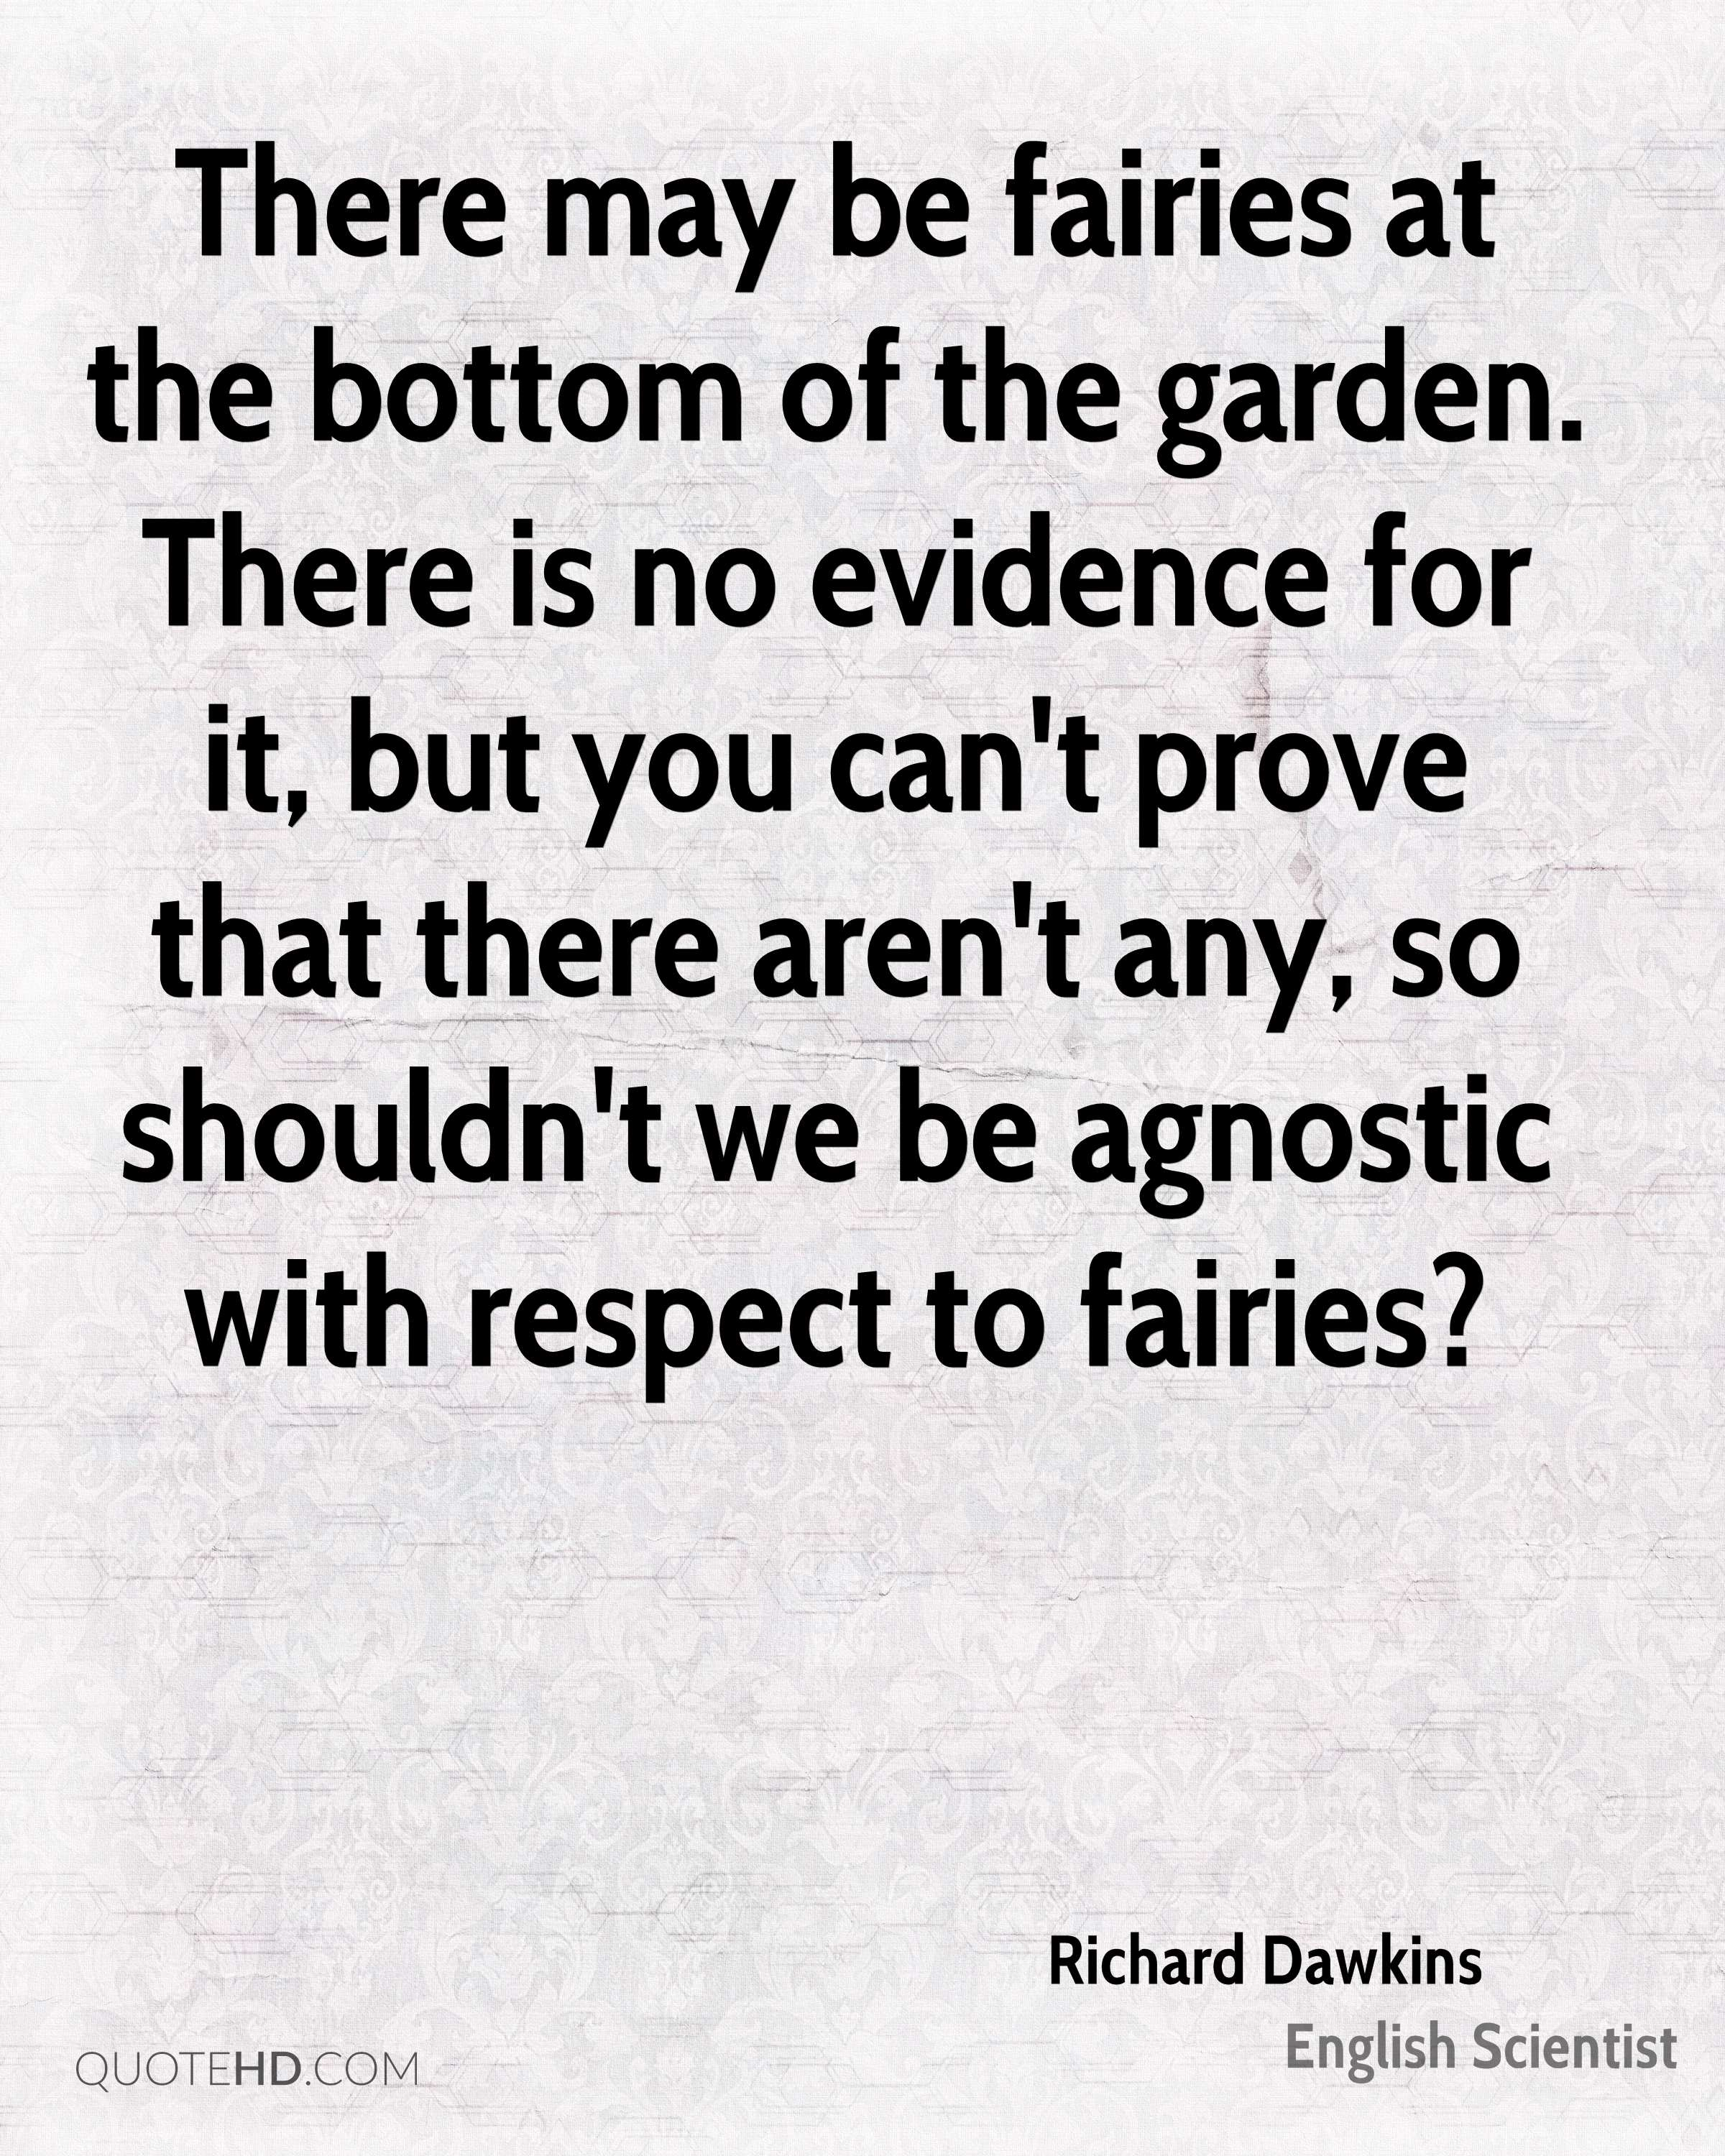 There may be fairies at the bottom of the garden. There is no evidence for it, but you can't prove that there aren't any, so shouldn't we be agnostic with respect to fairies?